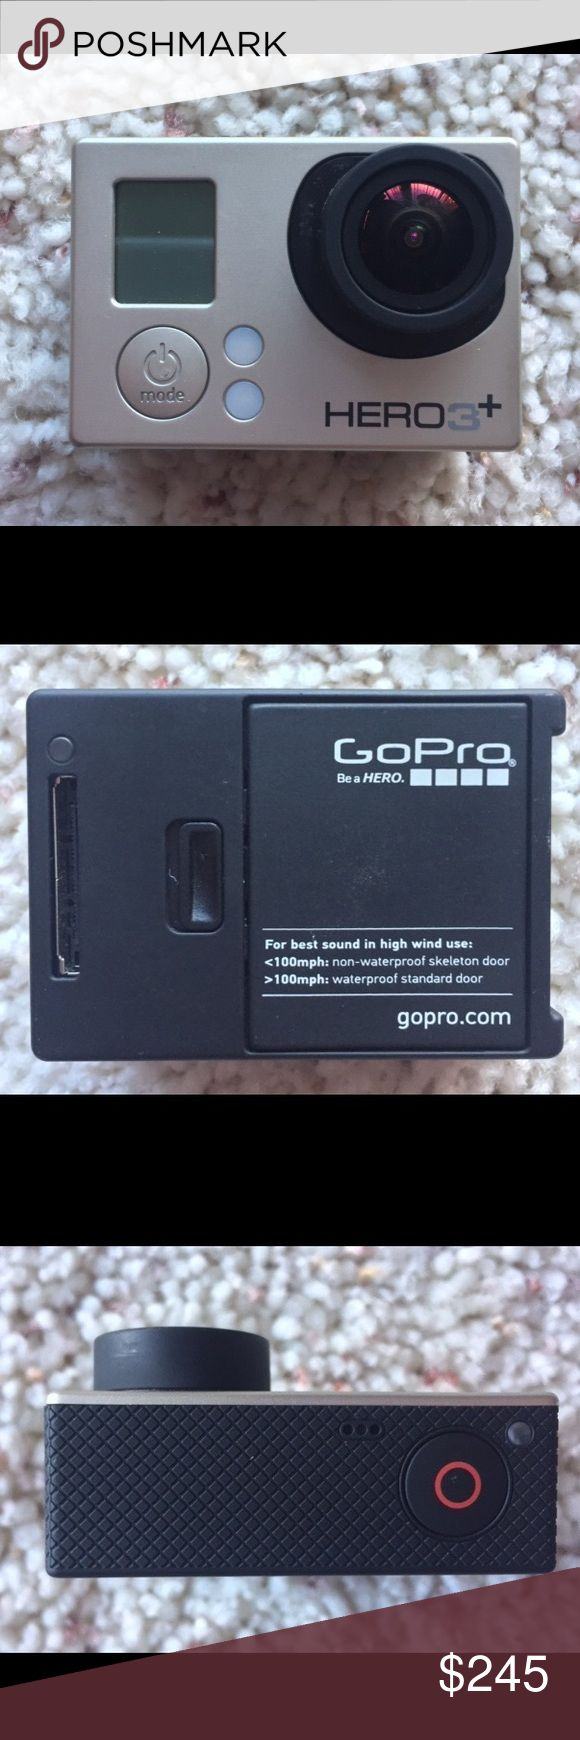 GoPro HERO 3+ Silver Bundle GoPro HERO 3+ Silver Bundle!! Never any problems - Excellent Condition! Bundle includes everything in pictures GoPro Other